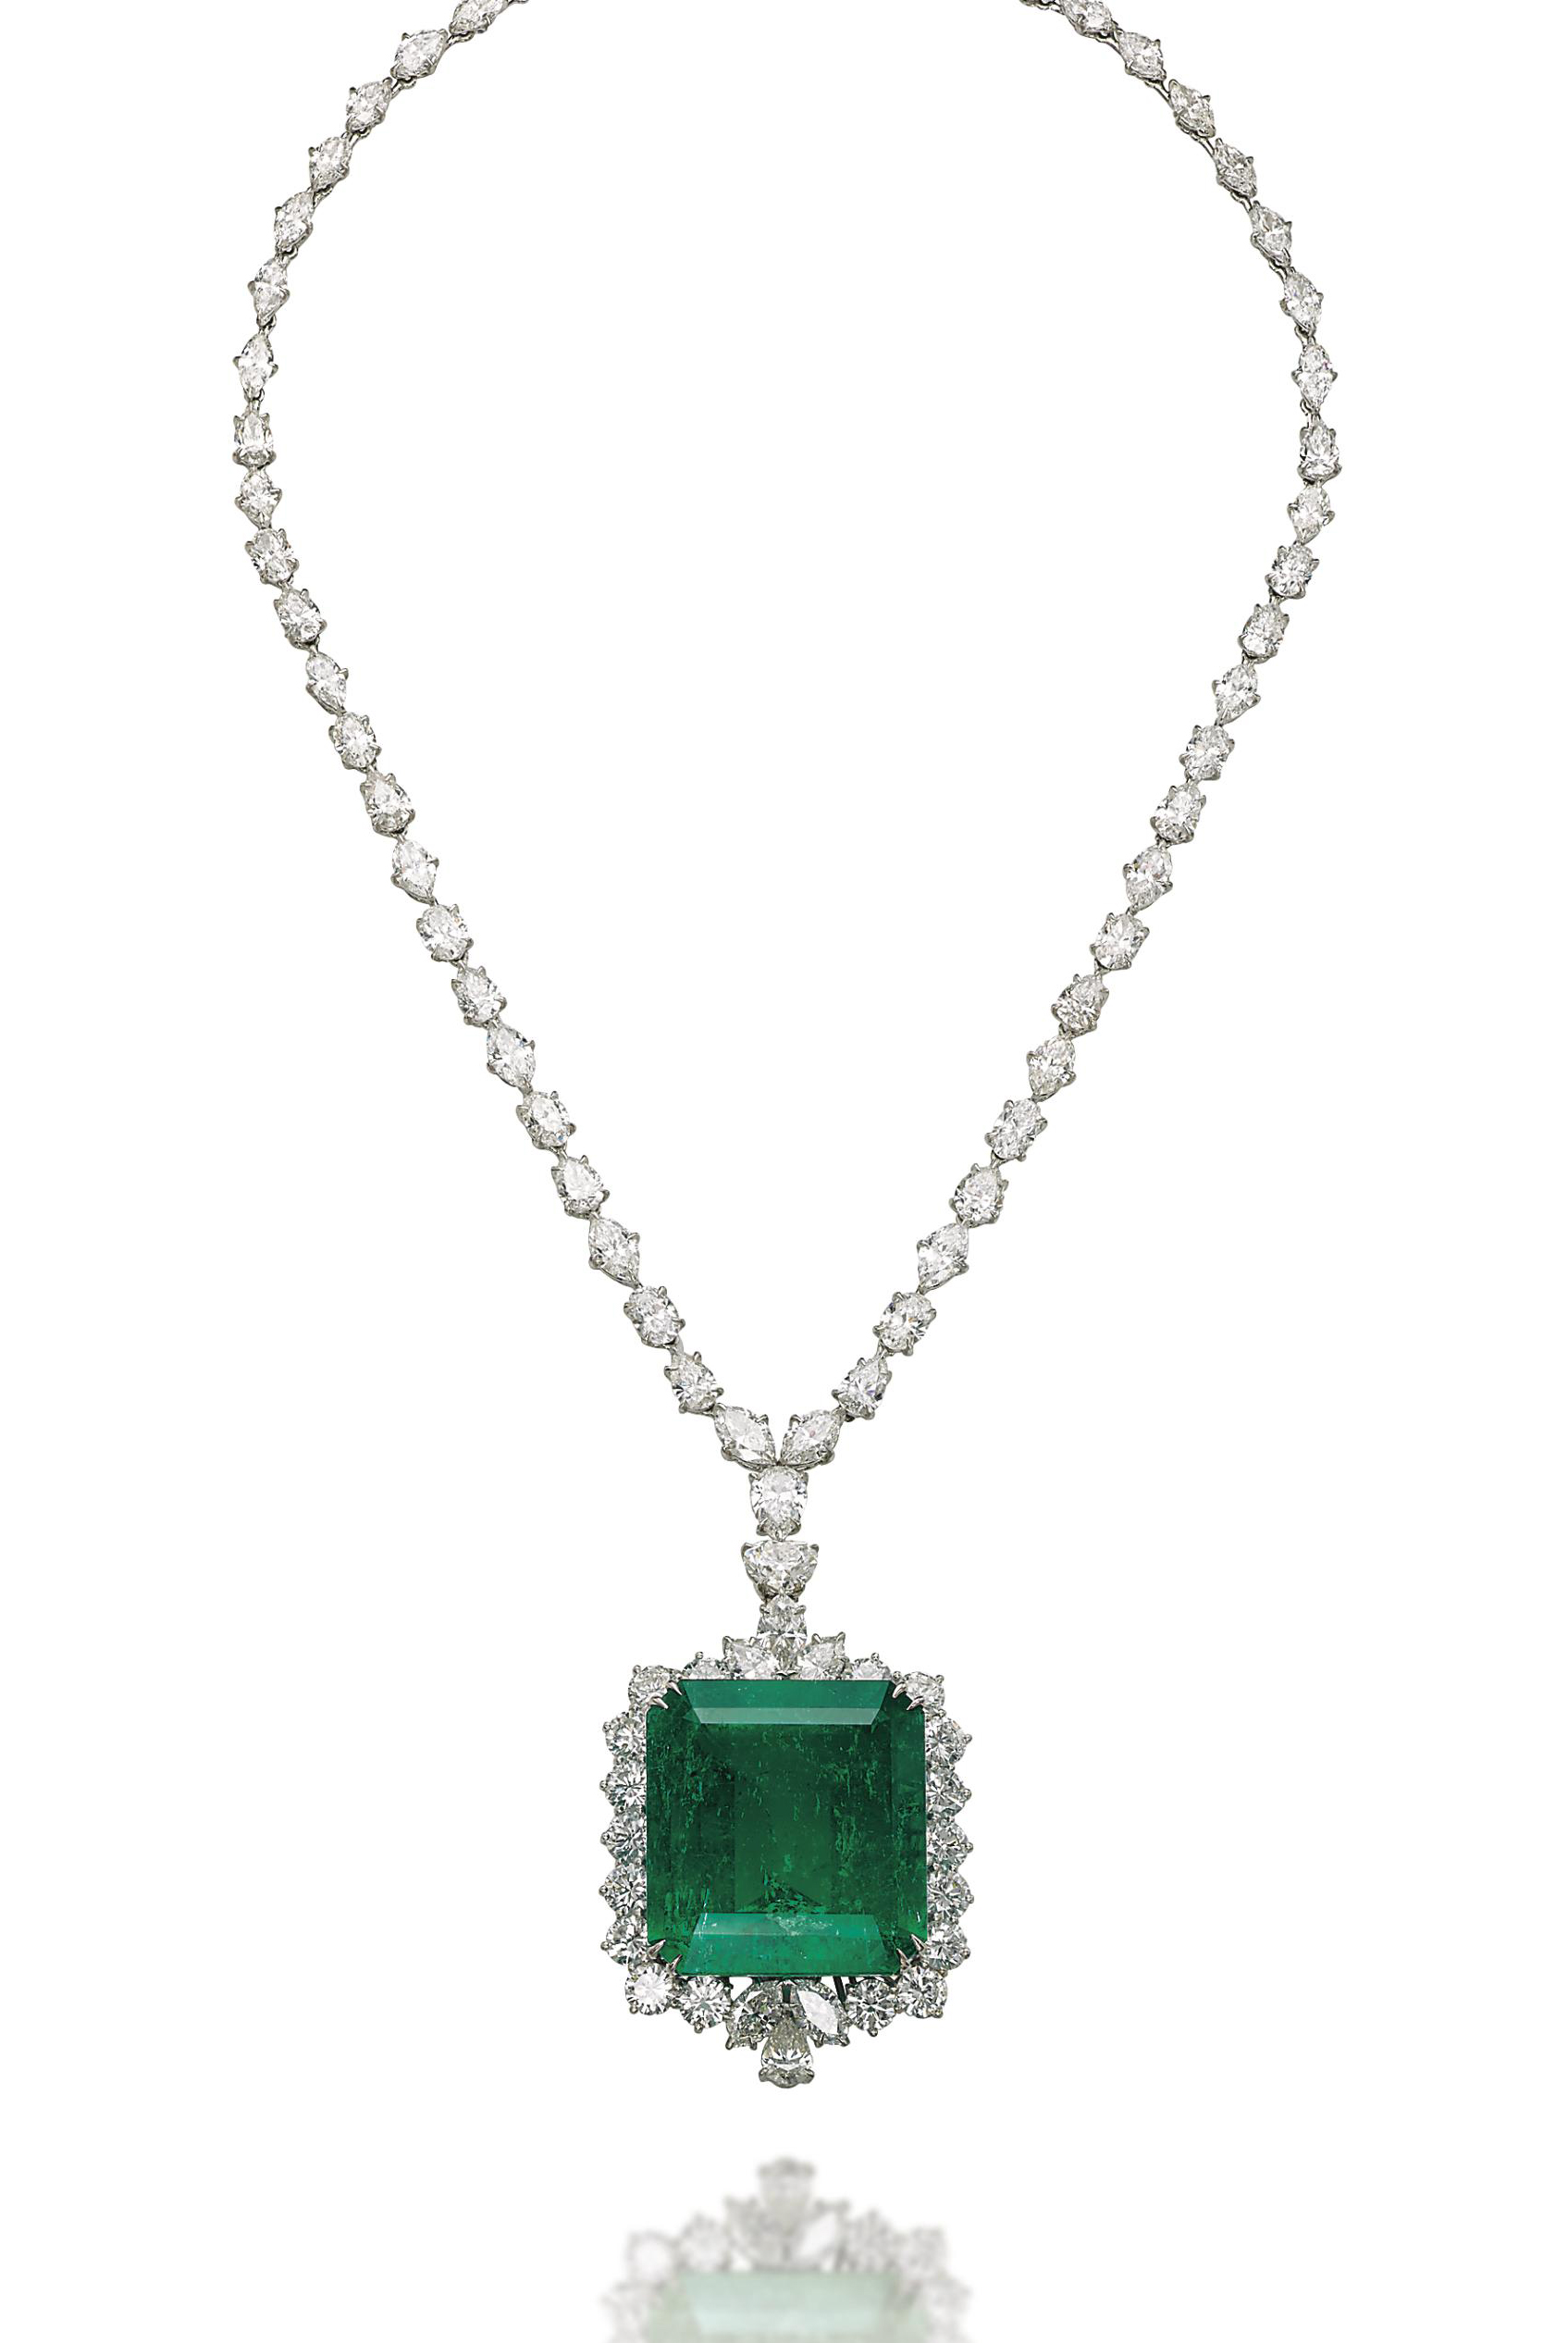 AN EMERALD AND DIAMOND PENDANT/NECKLACE, BY CHATILA